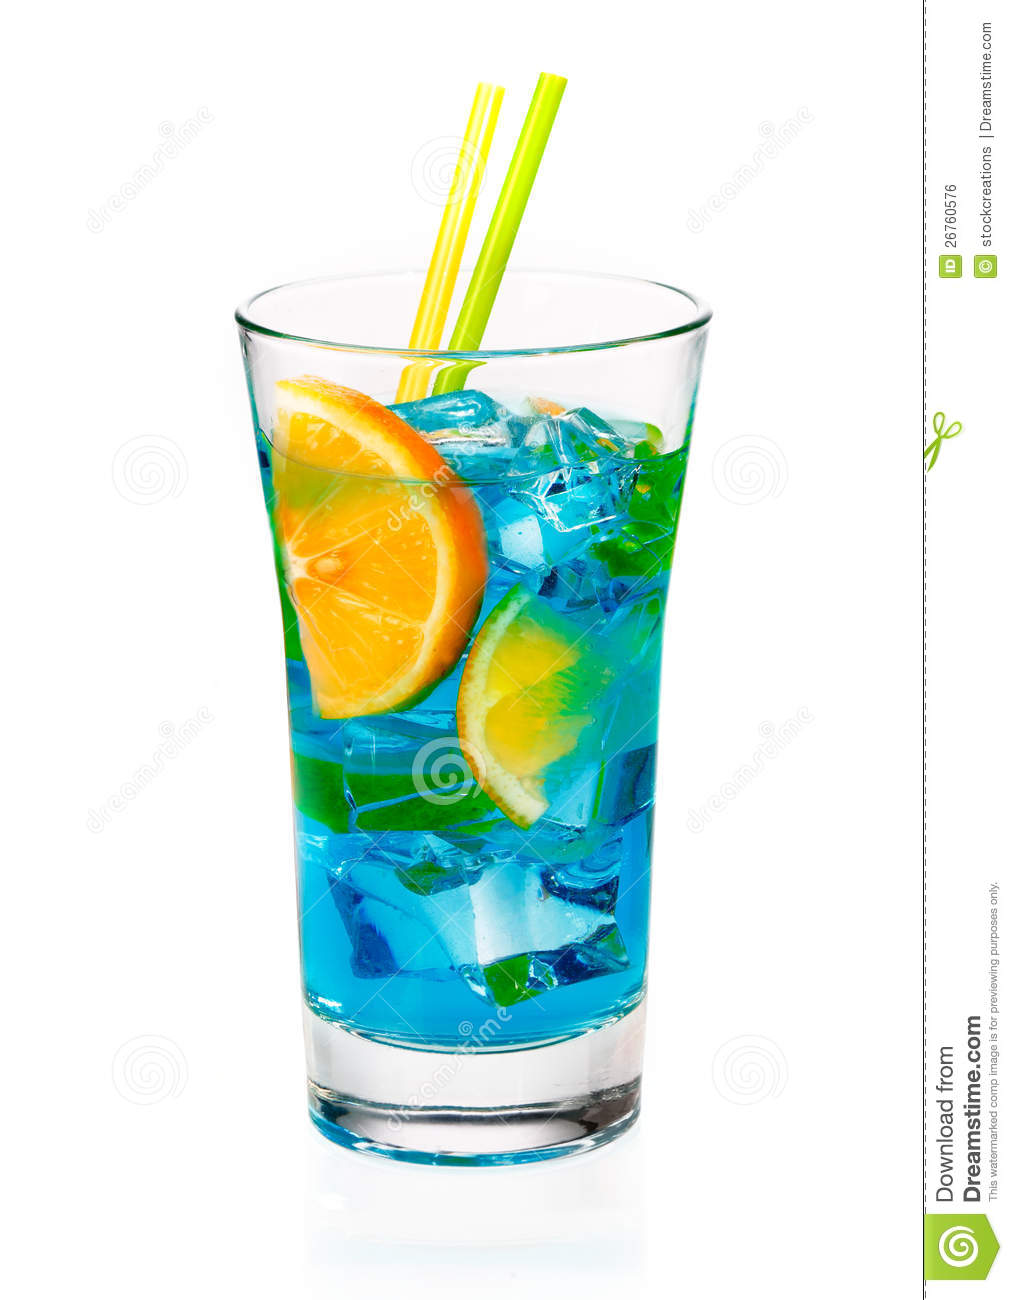 Cool refreshing curacao cocktail royalty free stock image for Cocktail curacao